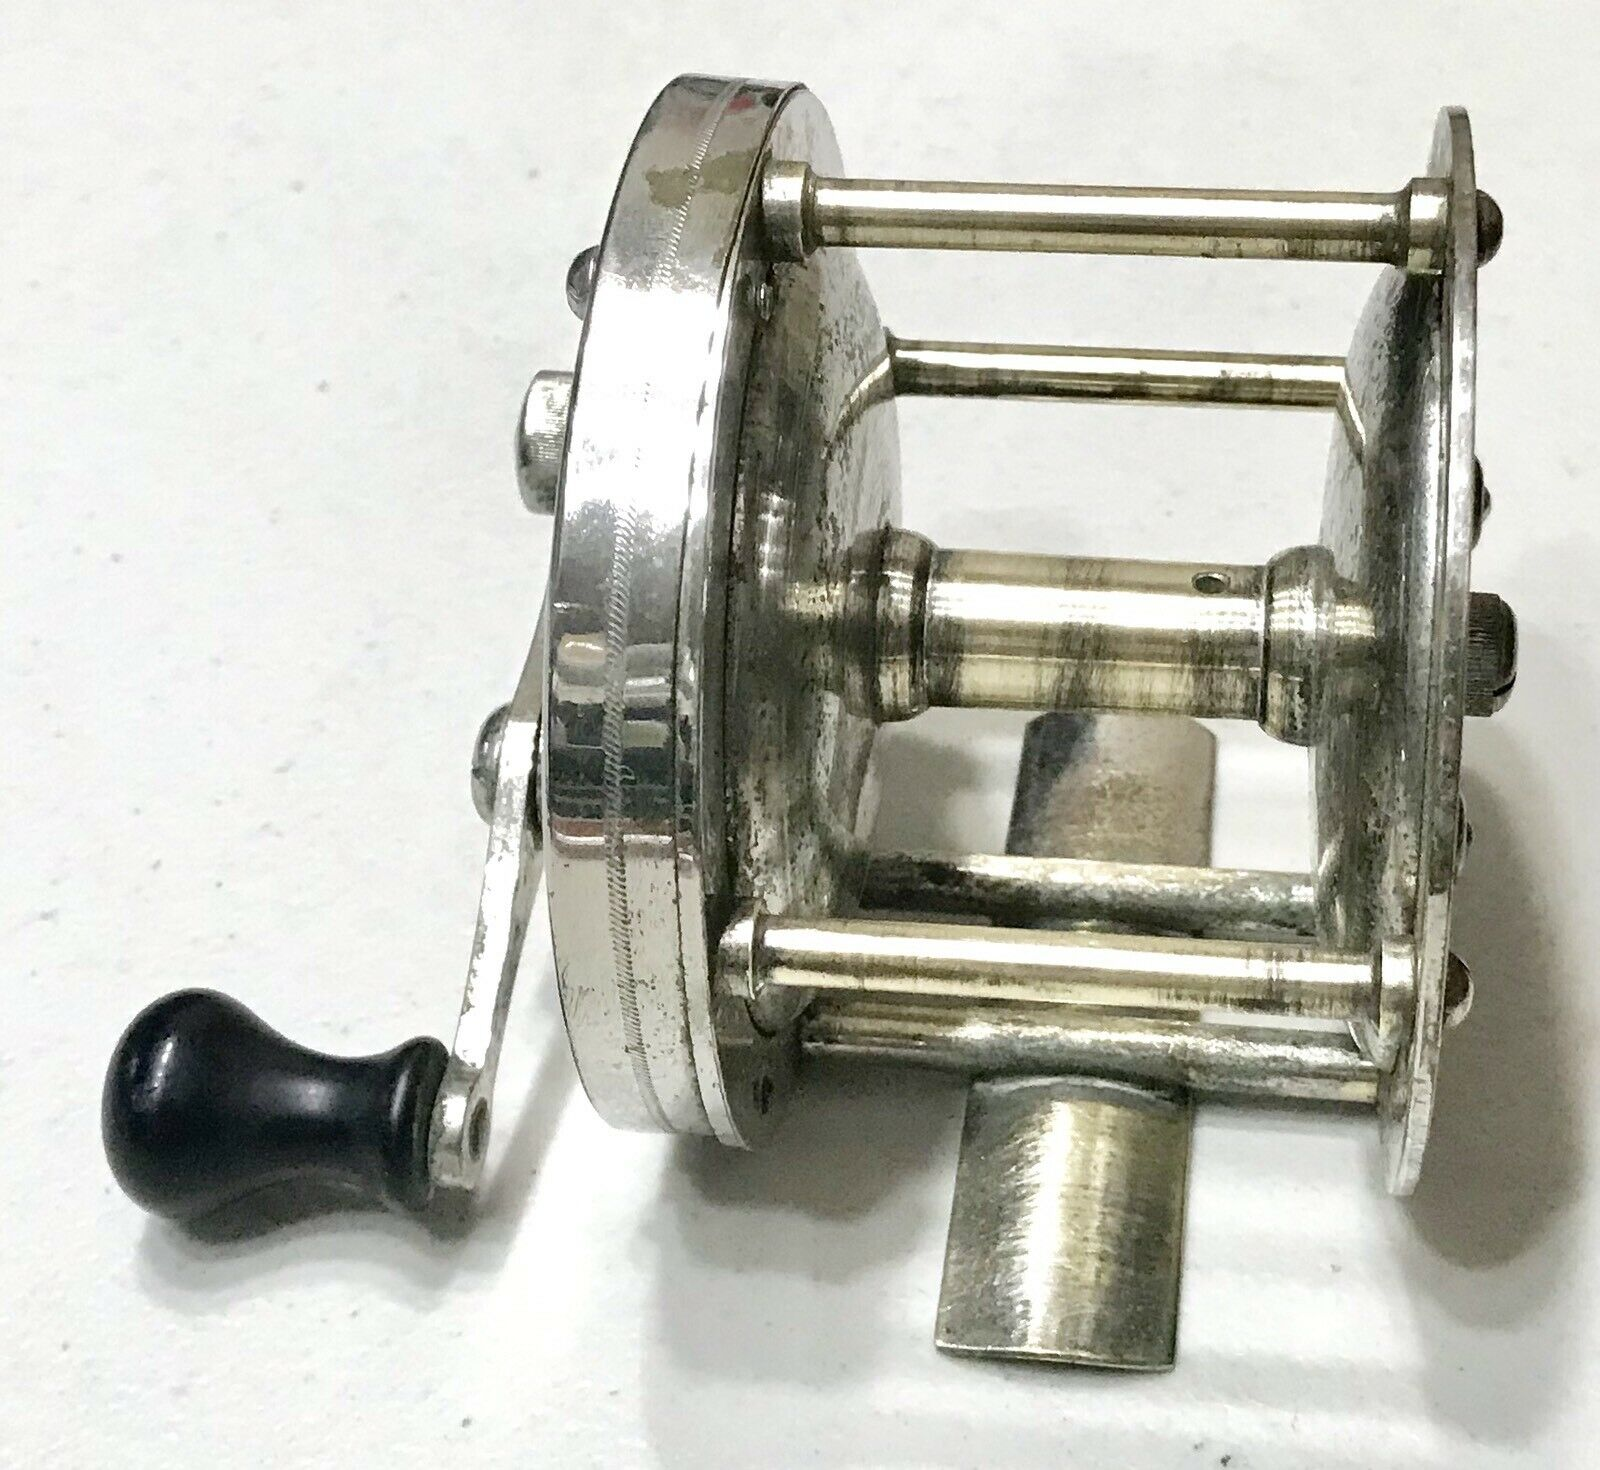 Rare Antique Vintage Hendryx 200 Casting Fishing Reel Spool Old Old Old 72b99f